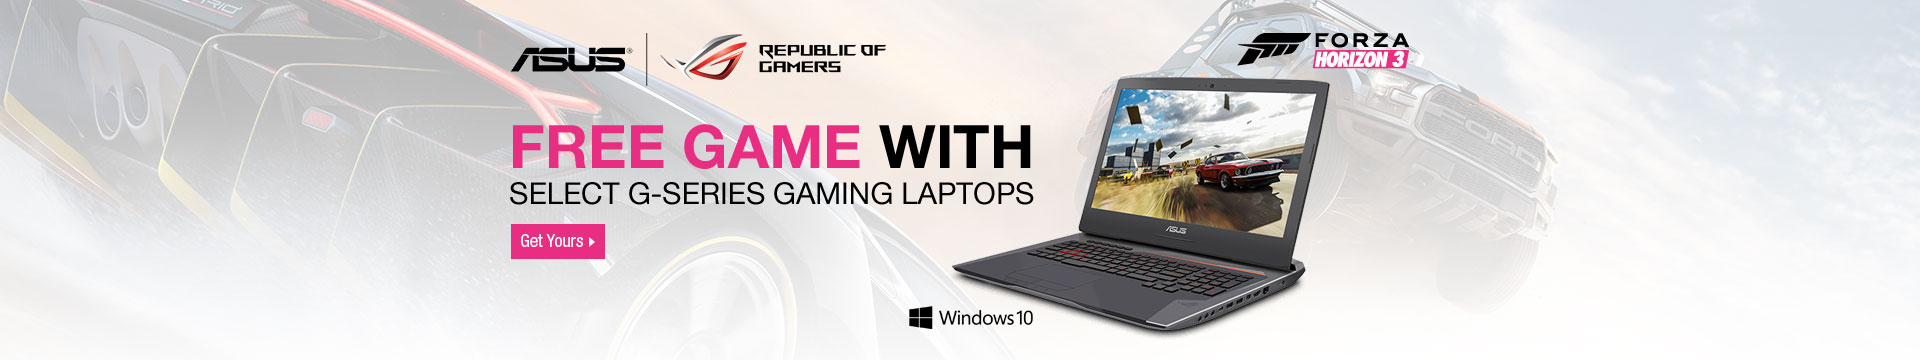 Buying new laptop for online gaming, music and school?